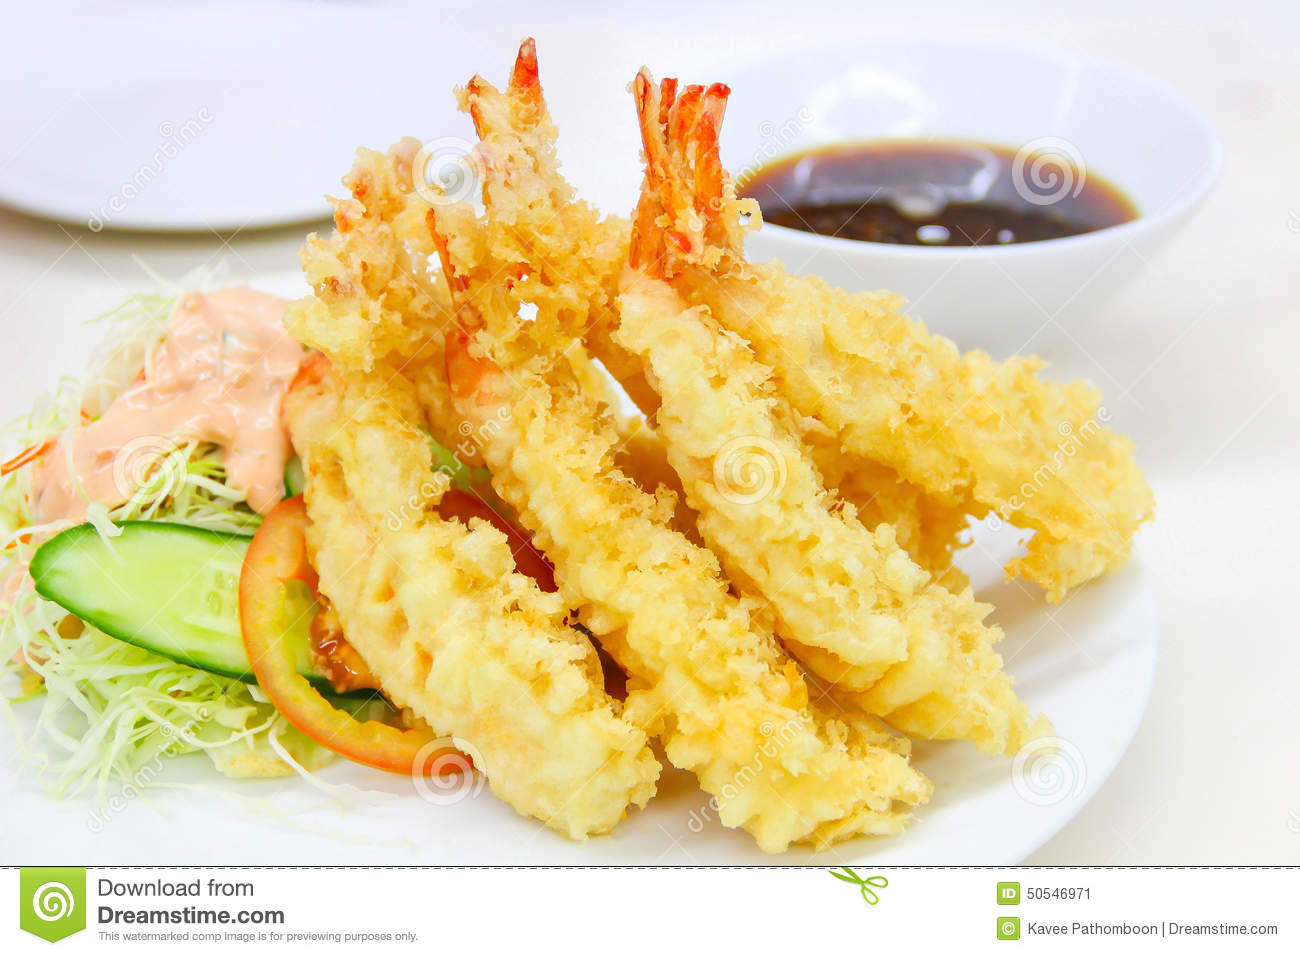 Japanese Cuisine - Tempura Shrimps (Deep Fried Shrimps) with sauce.